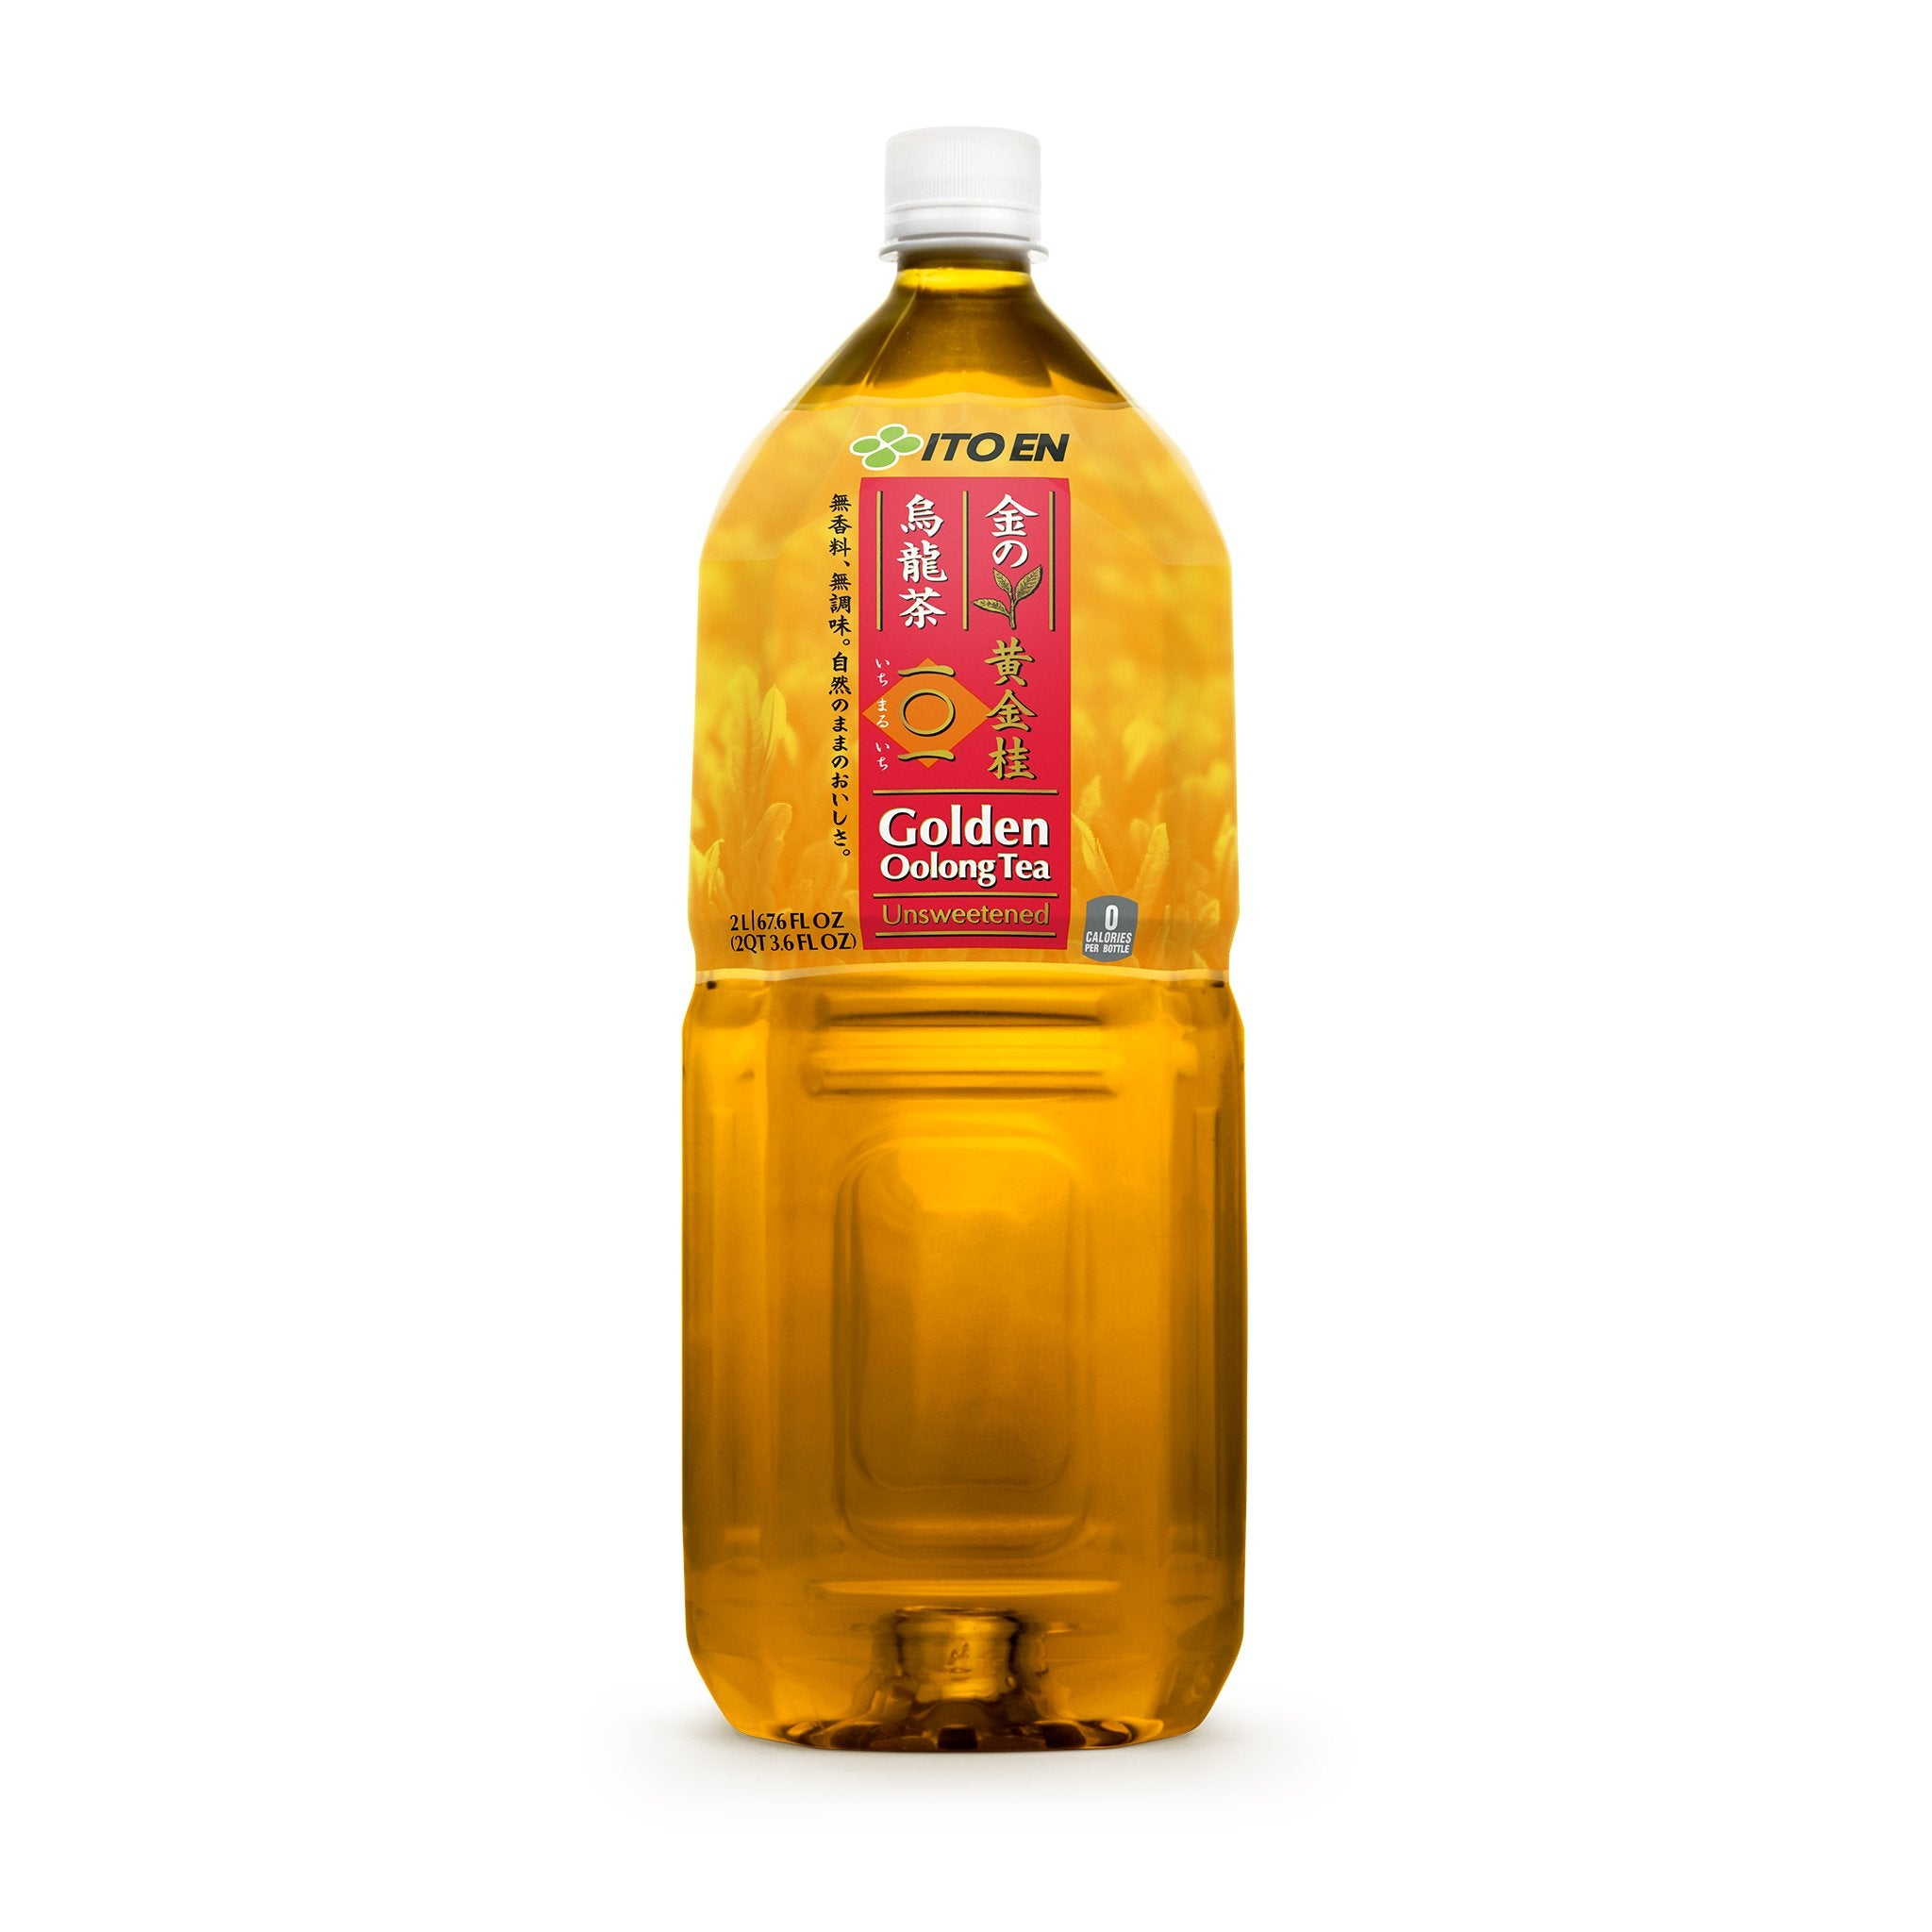 Golden Oolong (2L)